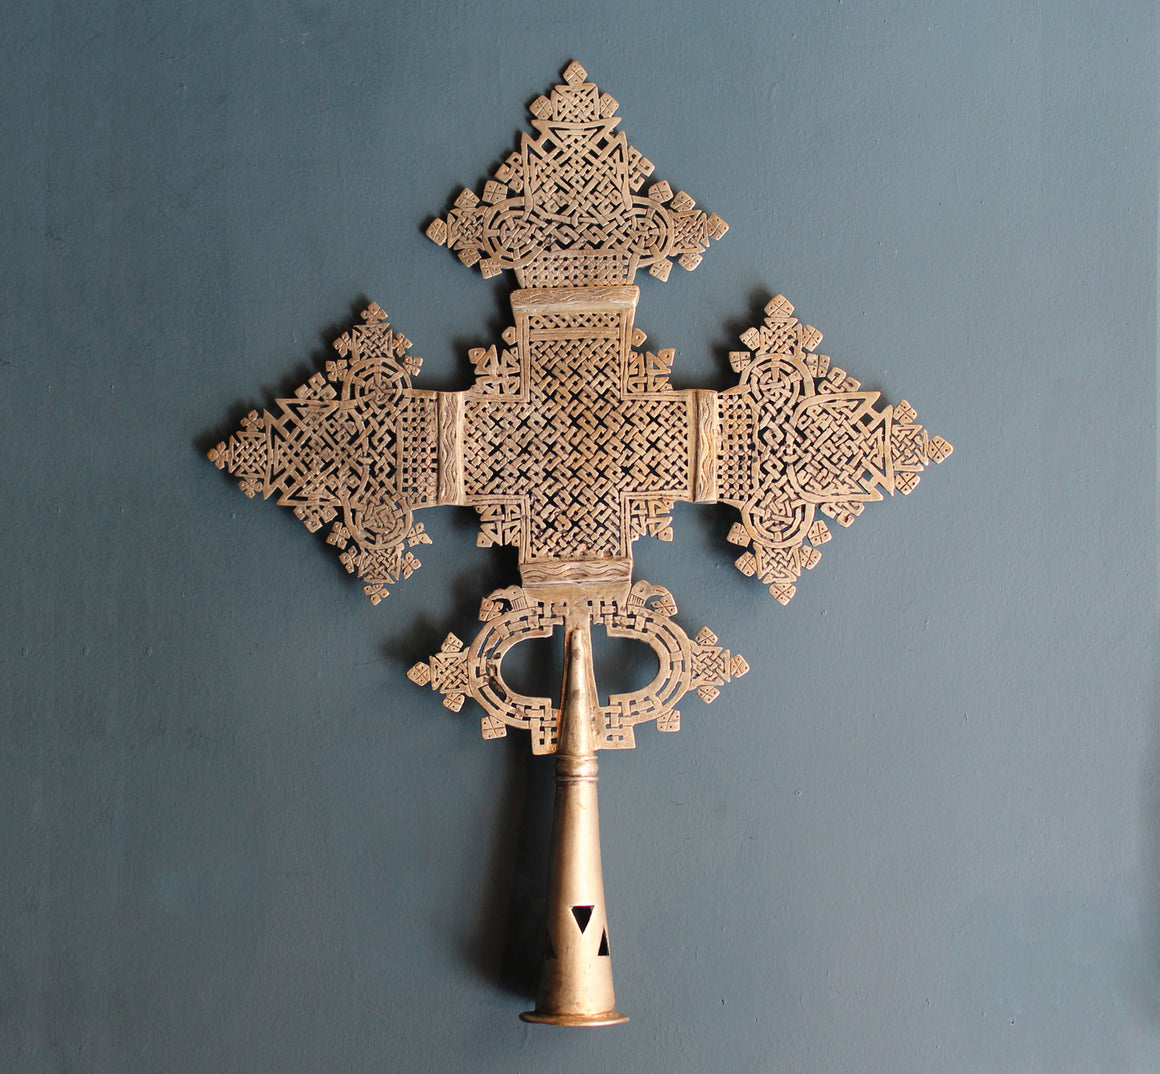 A Processional Cross from Ethiopia - Extra Large